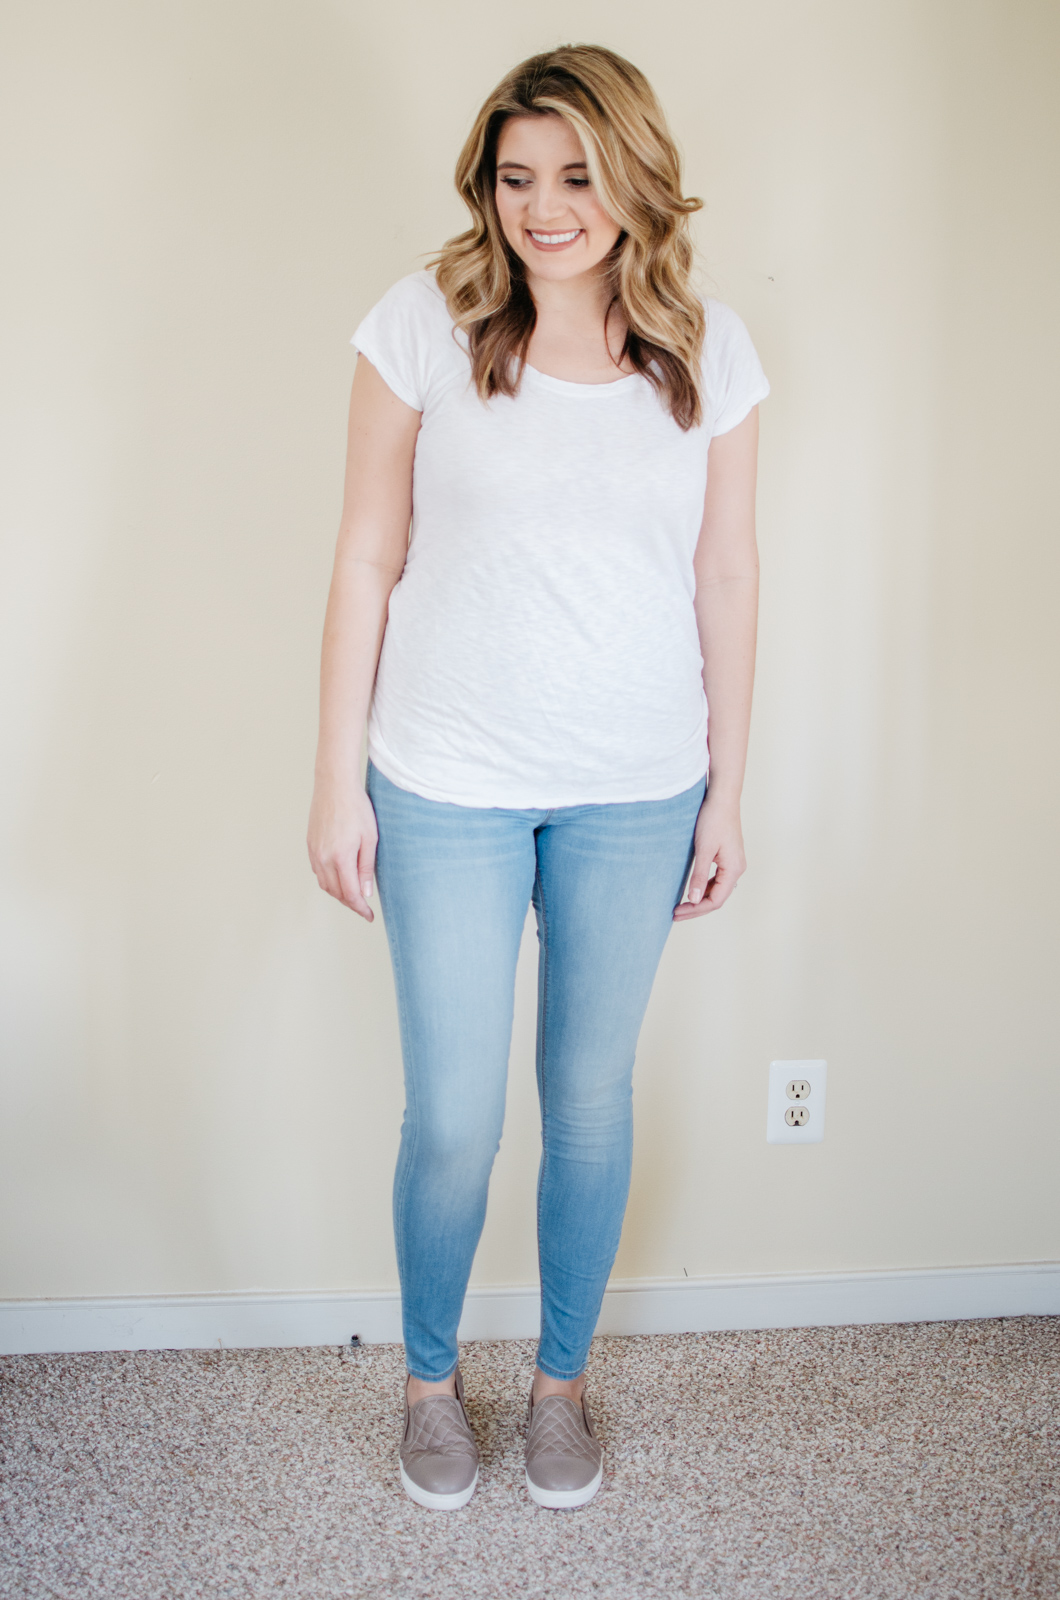 H&M Maternity Jeans reviews - H&M Mama super skinny | | See reviews of over 15 maternity jeans brands by clicking through to this post! | bylaurenm.com